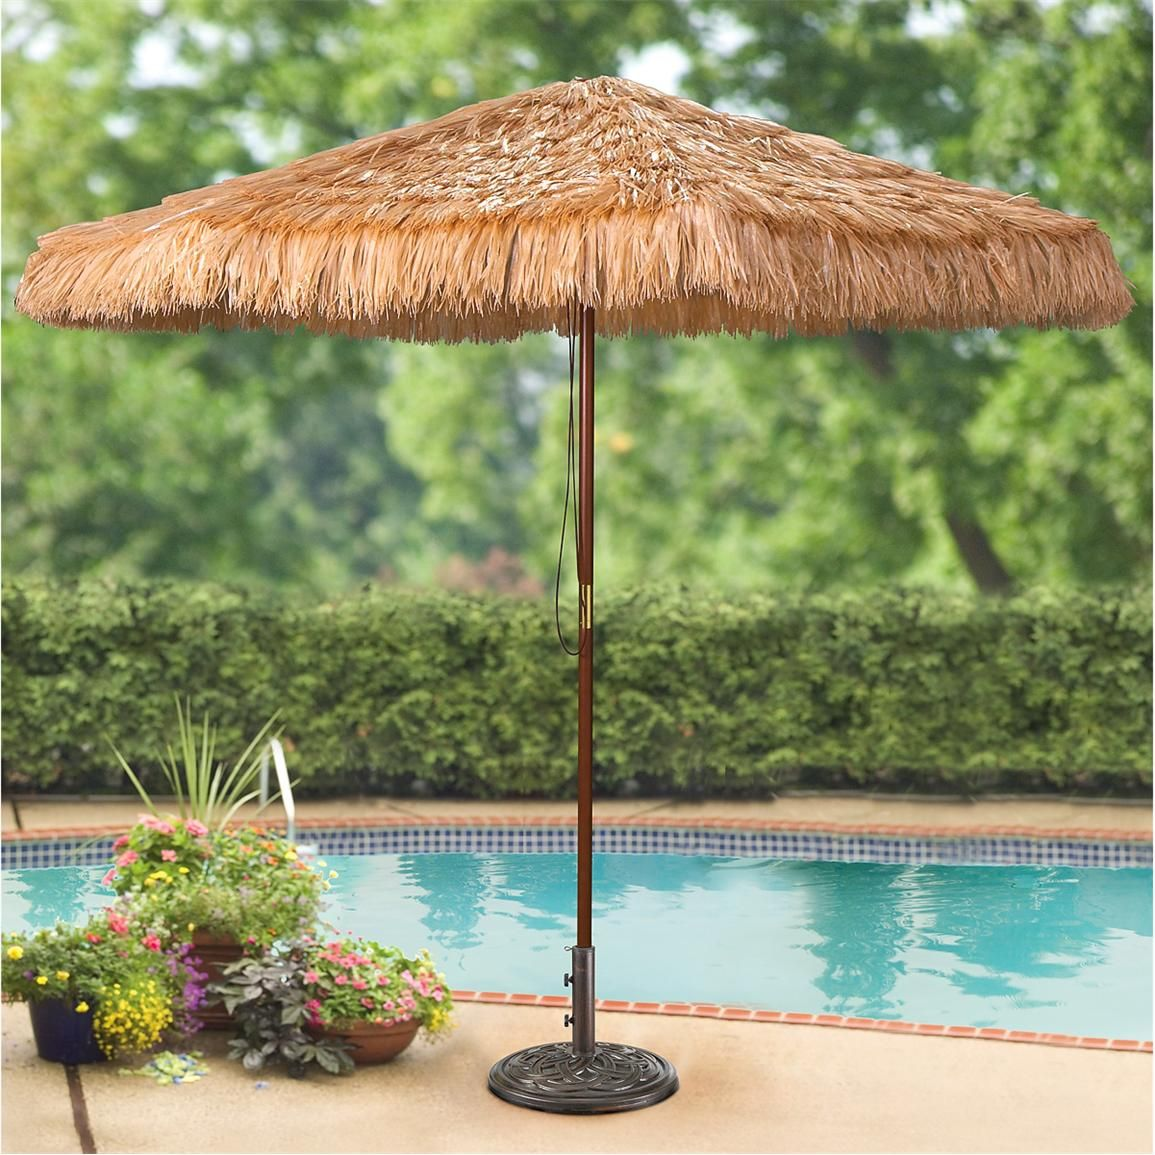 Sportsmanu0027s Guide Has Your CASTLECREEK Thatched Tiki Patio Umbrella, Wooden  Pole Available At A Great Price In Our Patio Umbrellas Collection